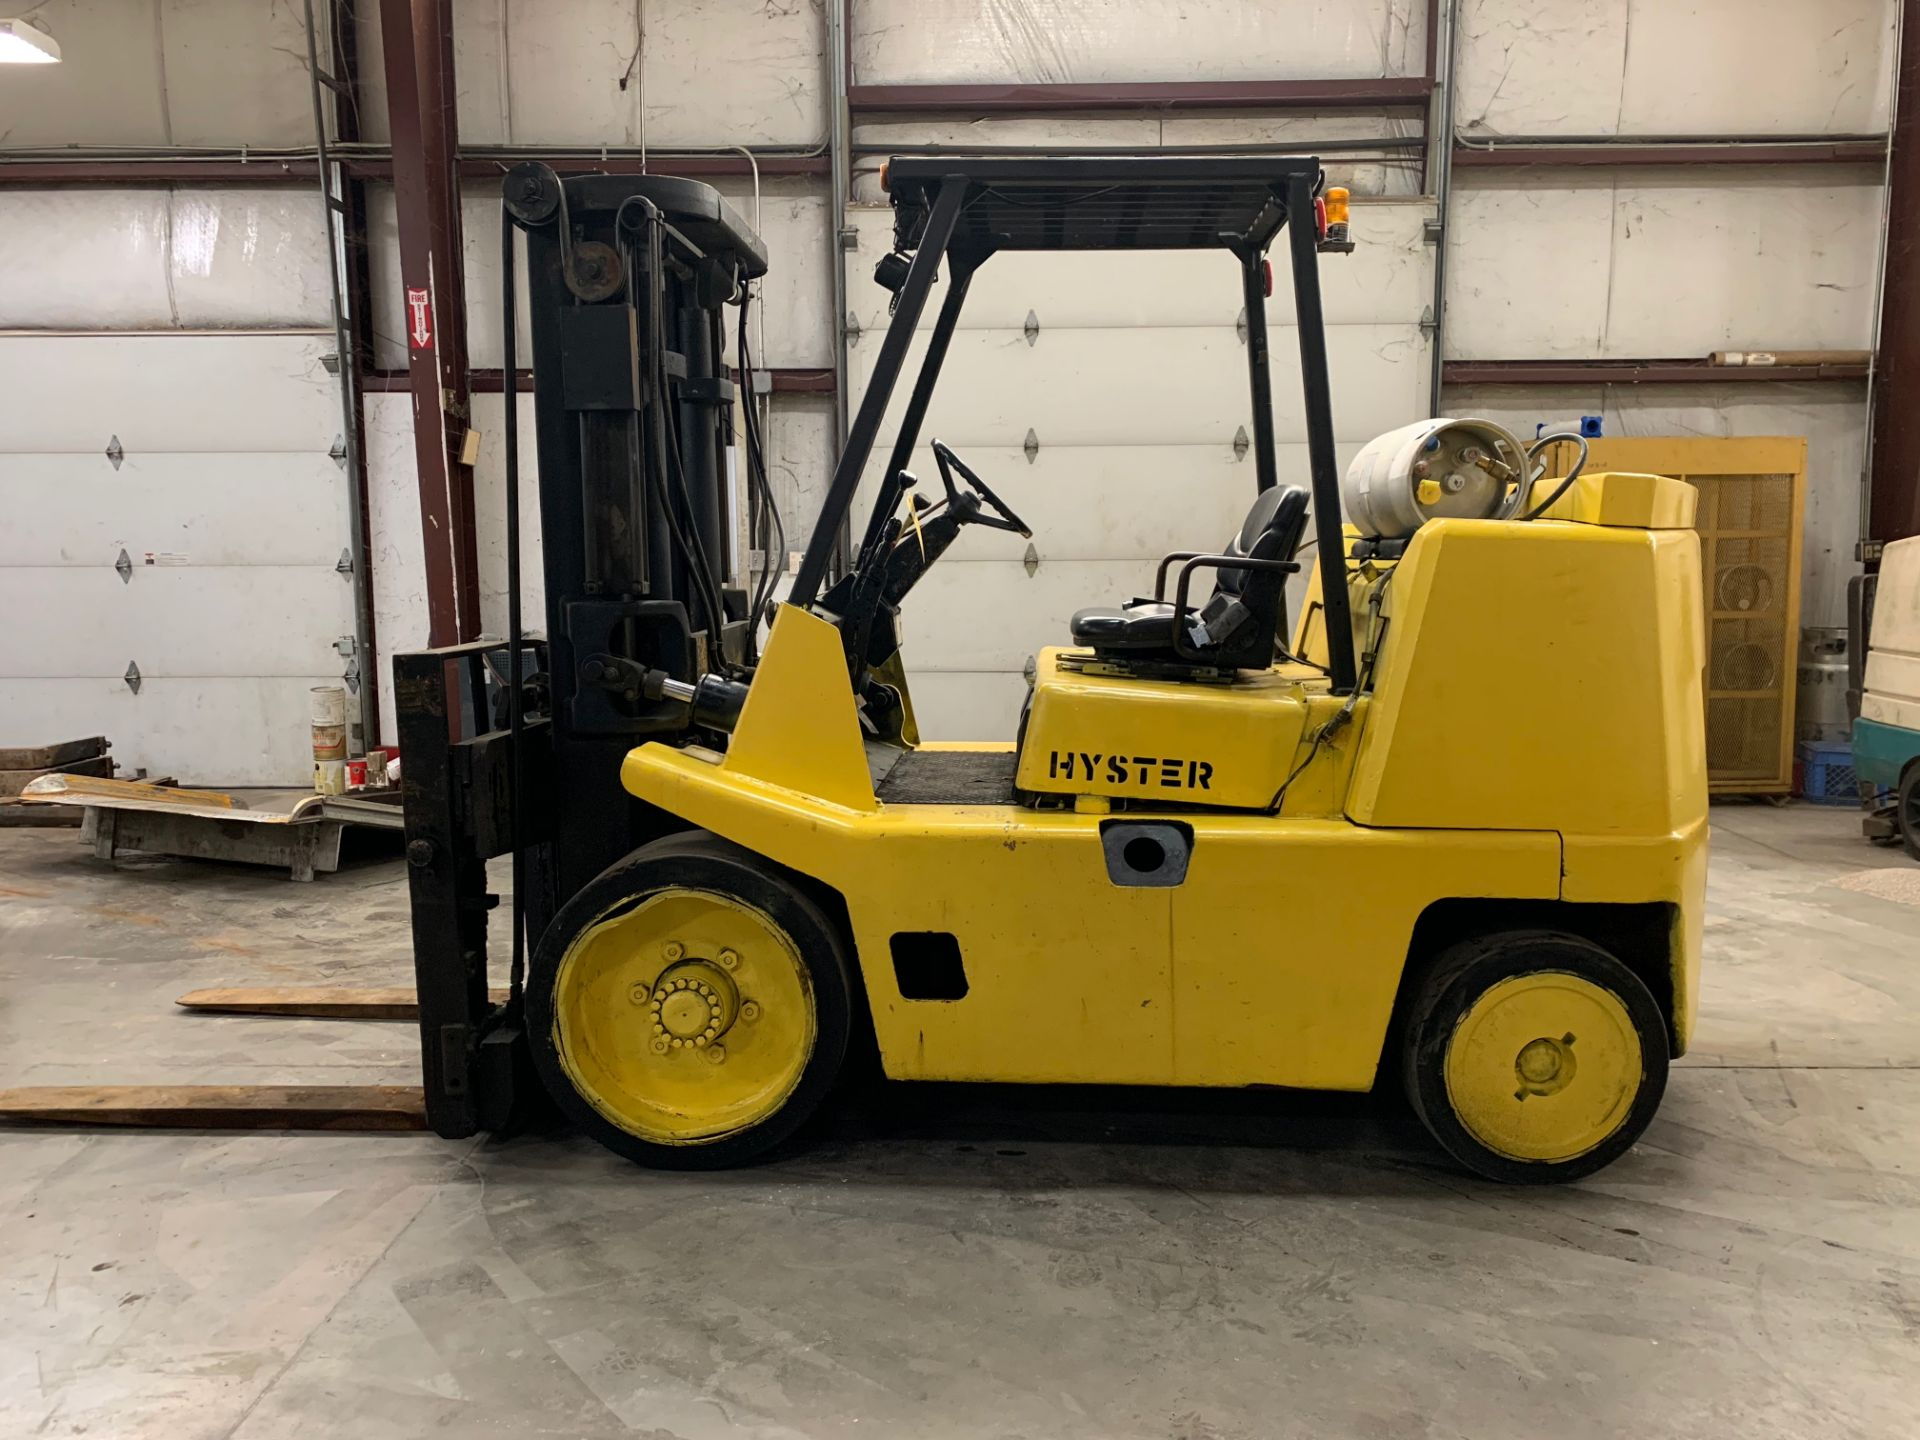 Lot 1 - HYSTER 16,800-LB. CAPACITY FORKLIFT, MODEL: S155XL EXTENDED, S/N: B024D03288R, LPG, SOLID TIRES, 2-